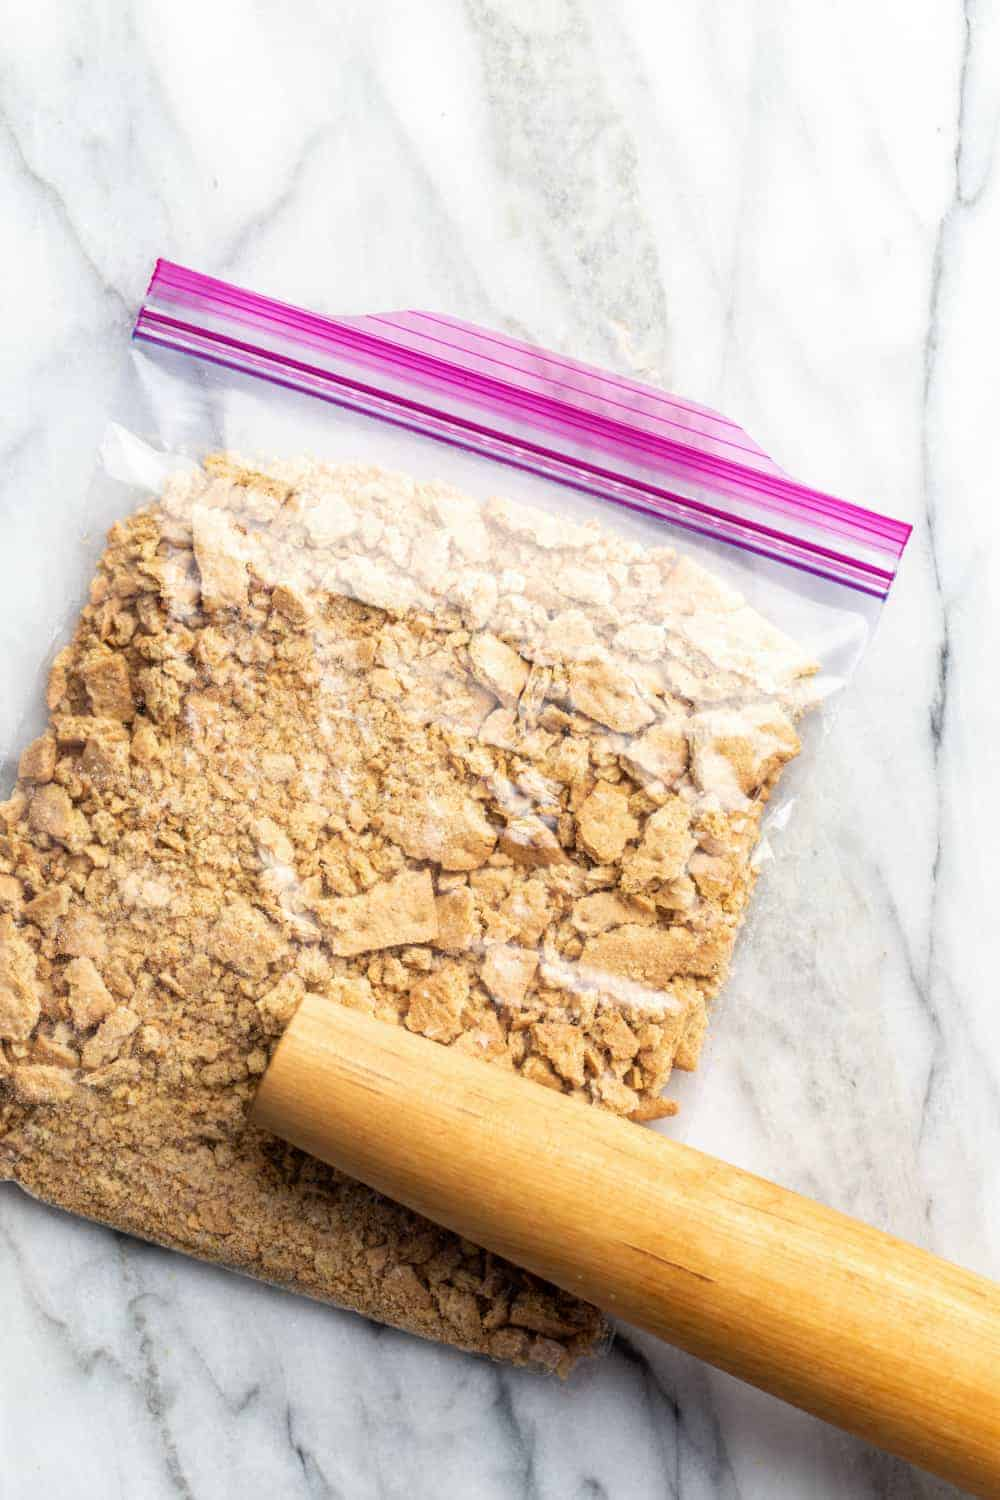 Rolling pin crushing graham crackers in a zip-top bag into crumbs